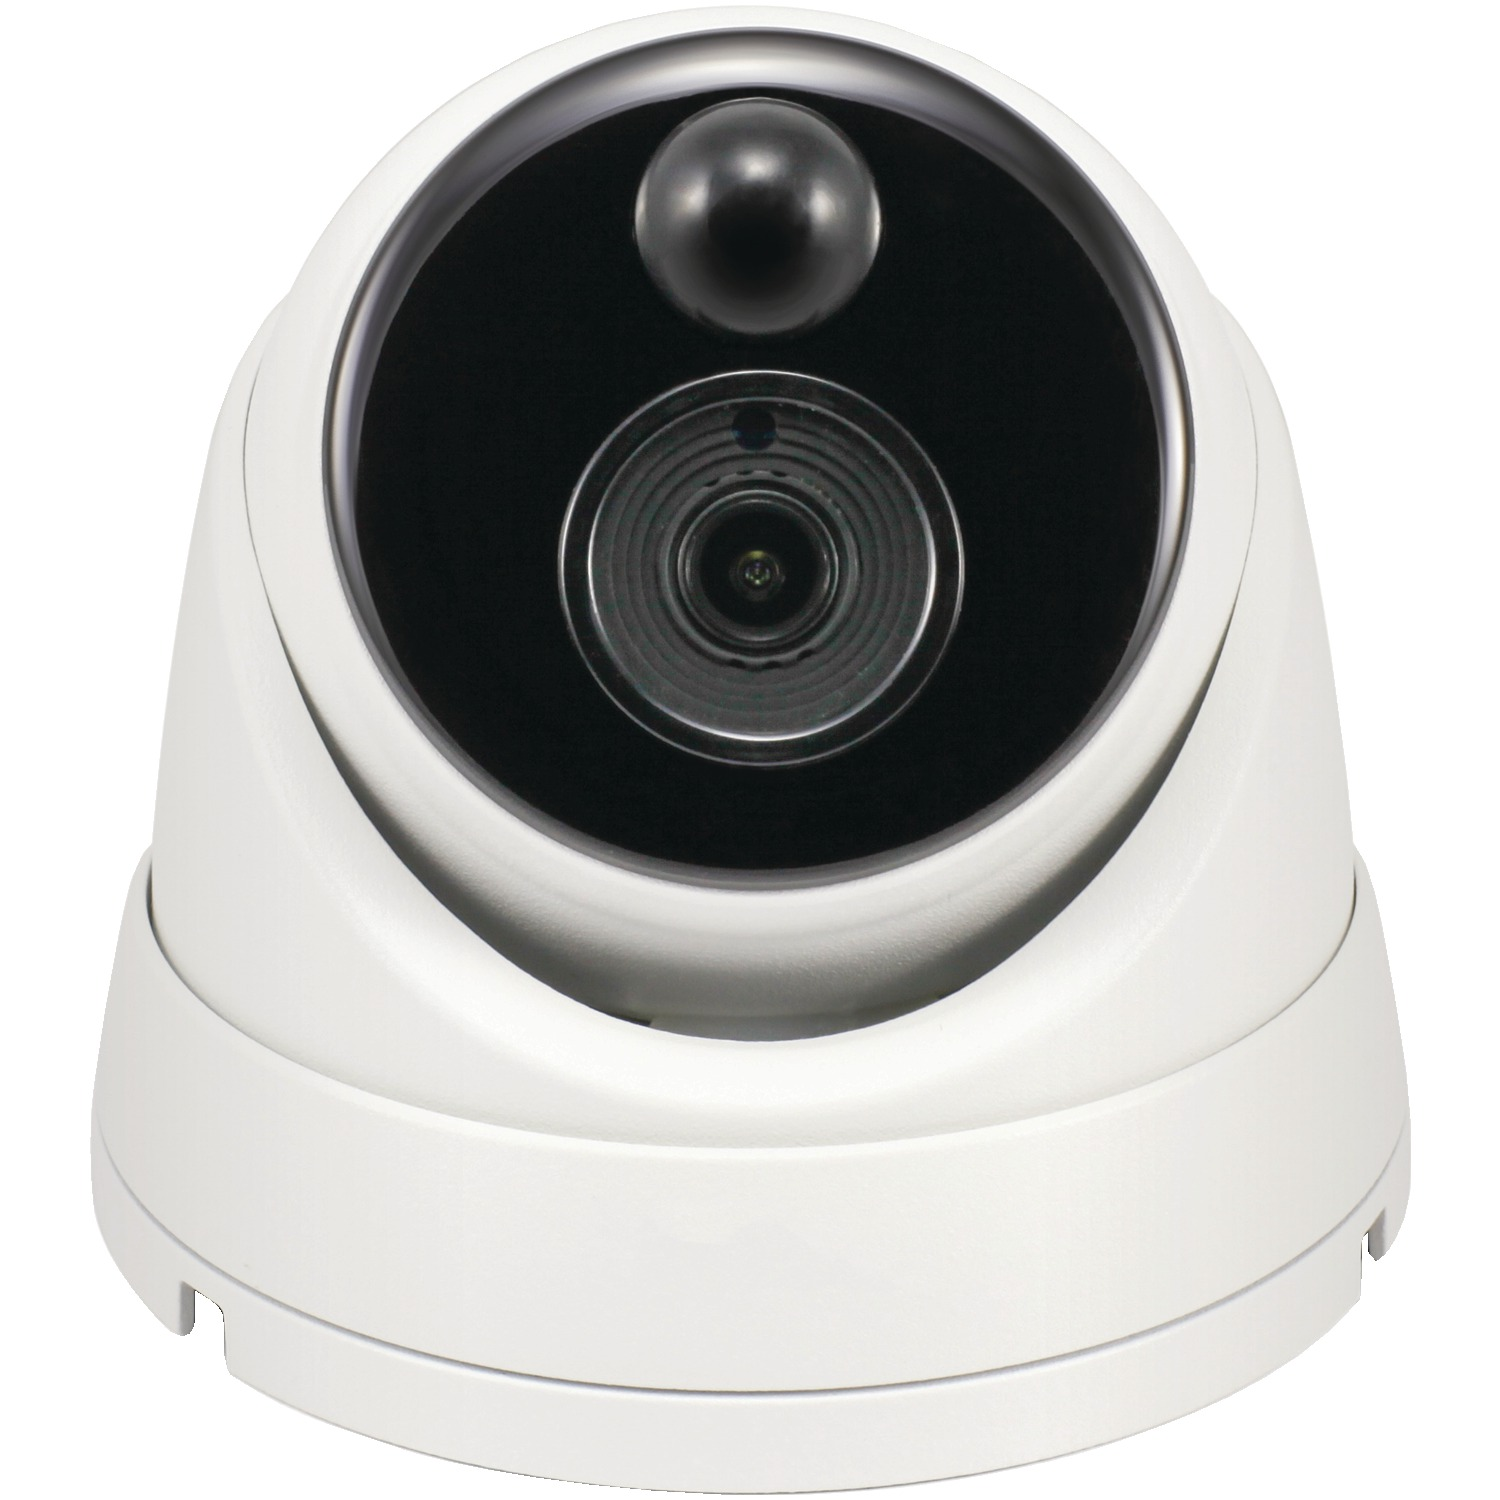 Swann SWPRO-5MPMSD-US PRO-5MPMSD 5.0-Megapixel PIR Add-On Dome Camera